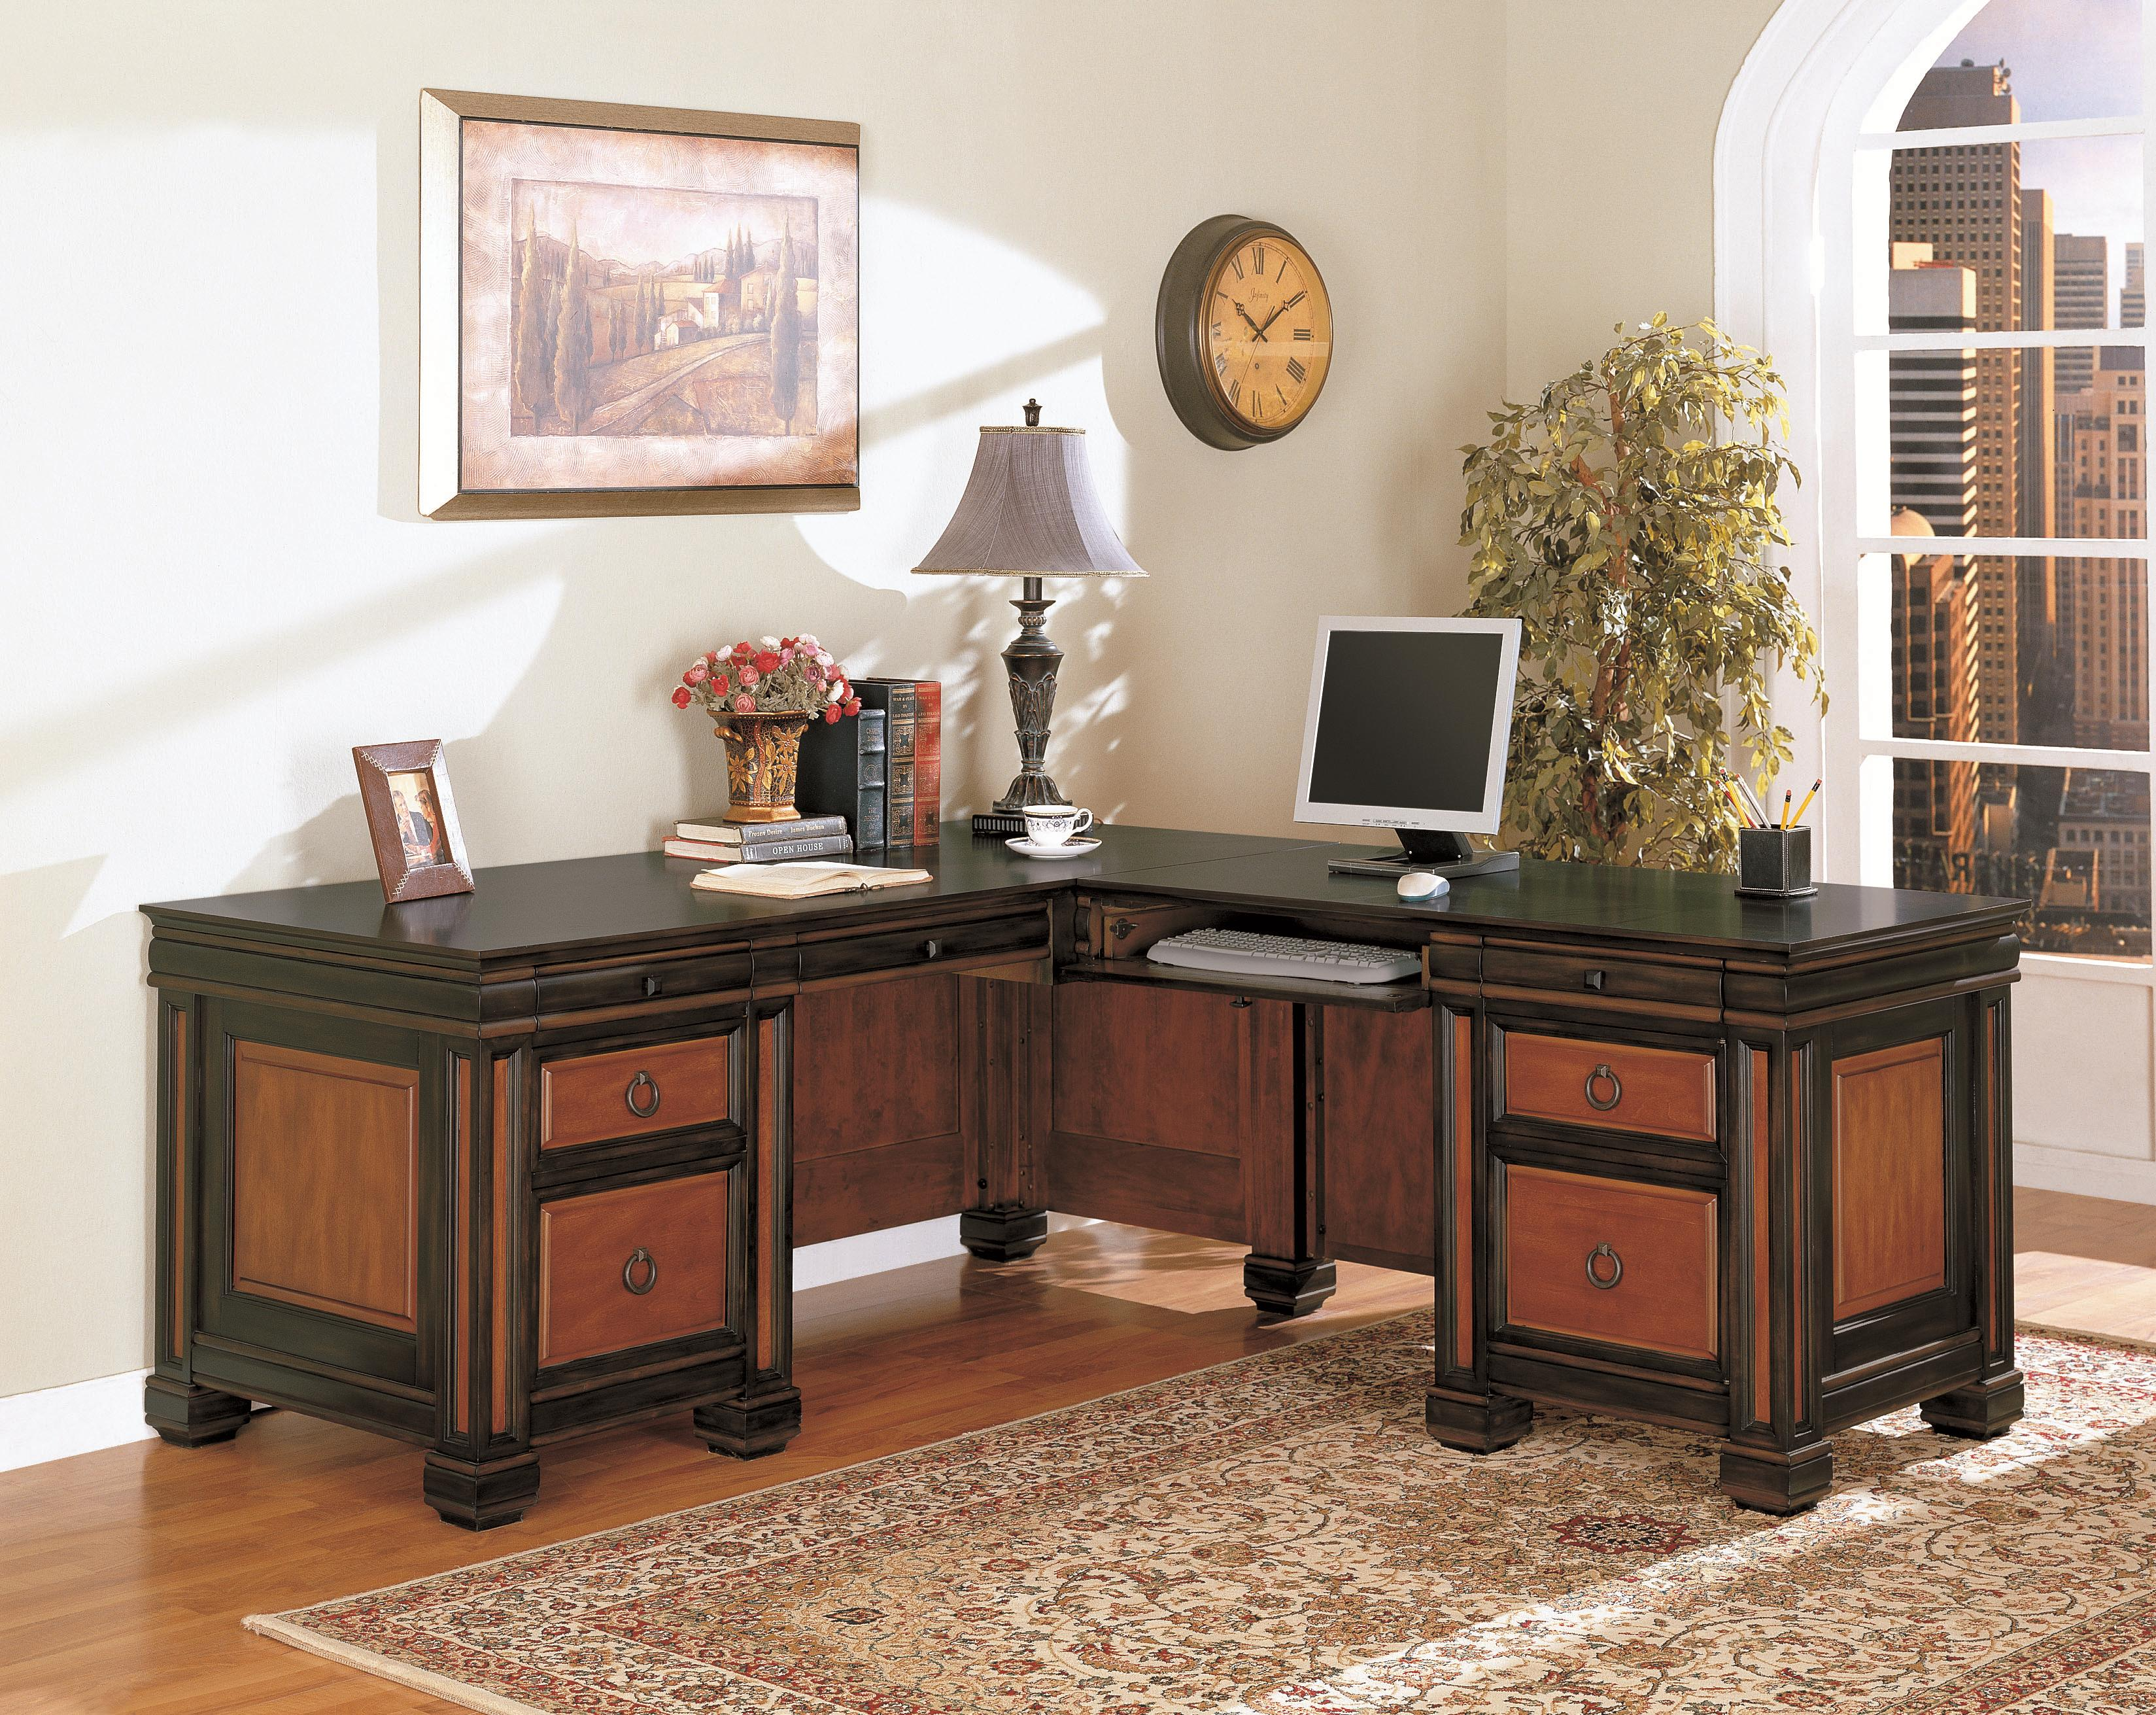 Home Office L Shaped Executive Desk In Dark Two Tone Finish FREE SHIPPING!